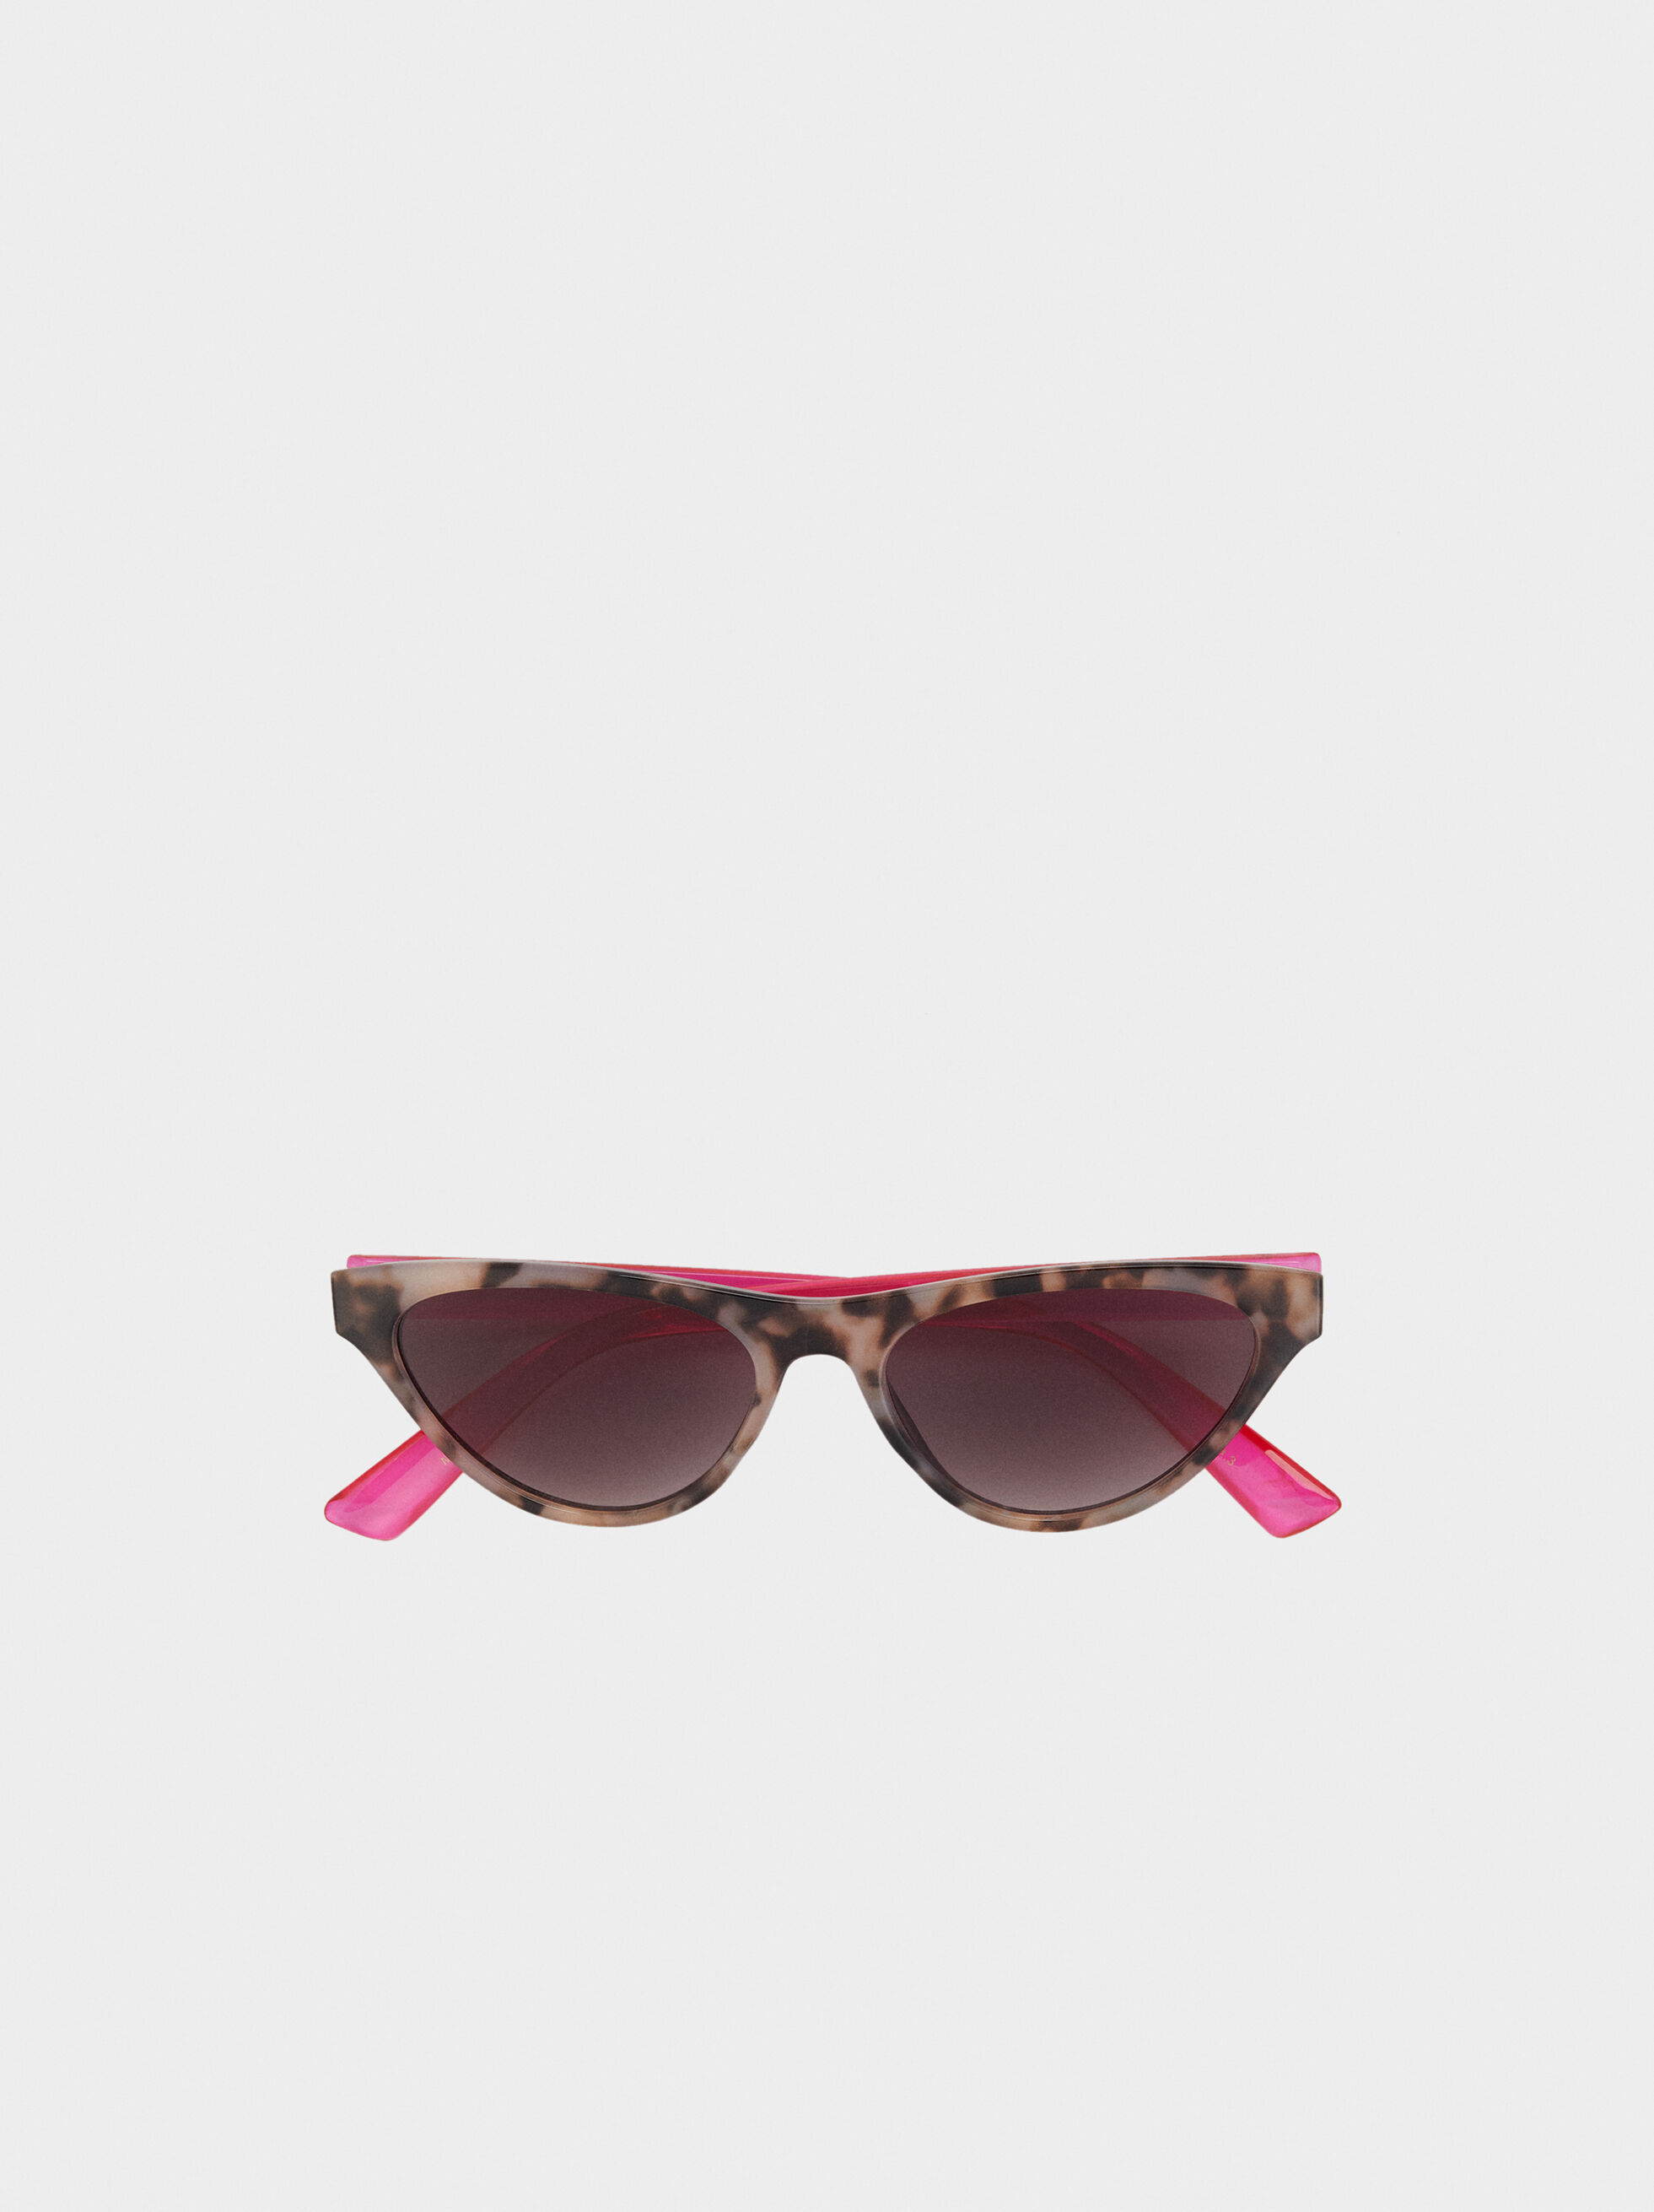 Cat Eye Sunglasses, Brown, hi-res